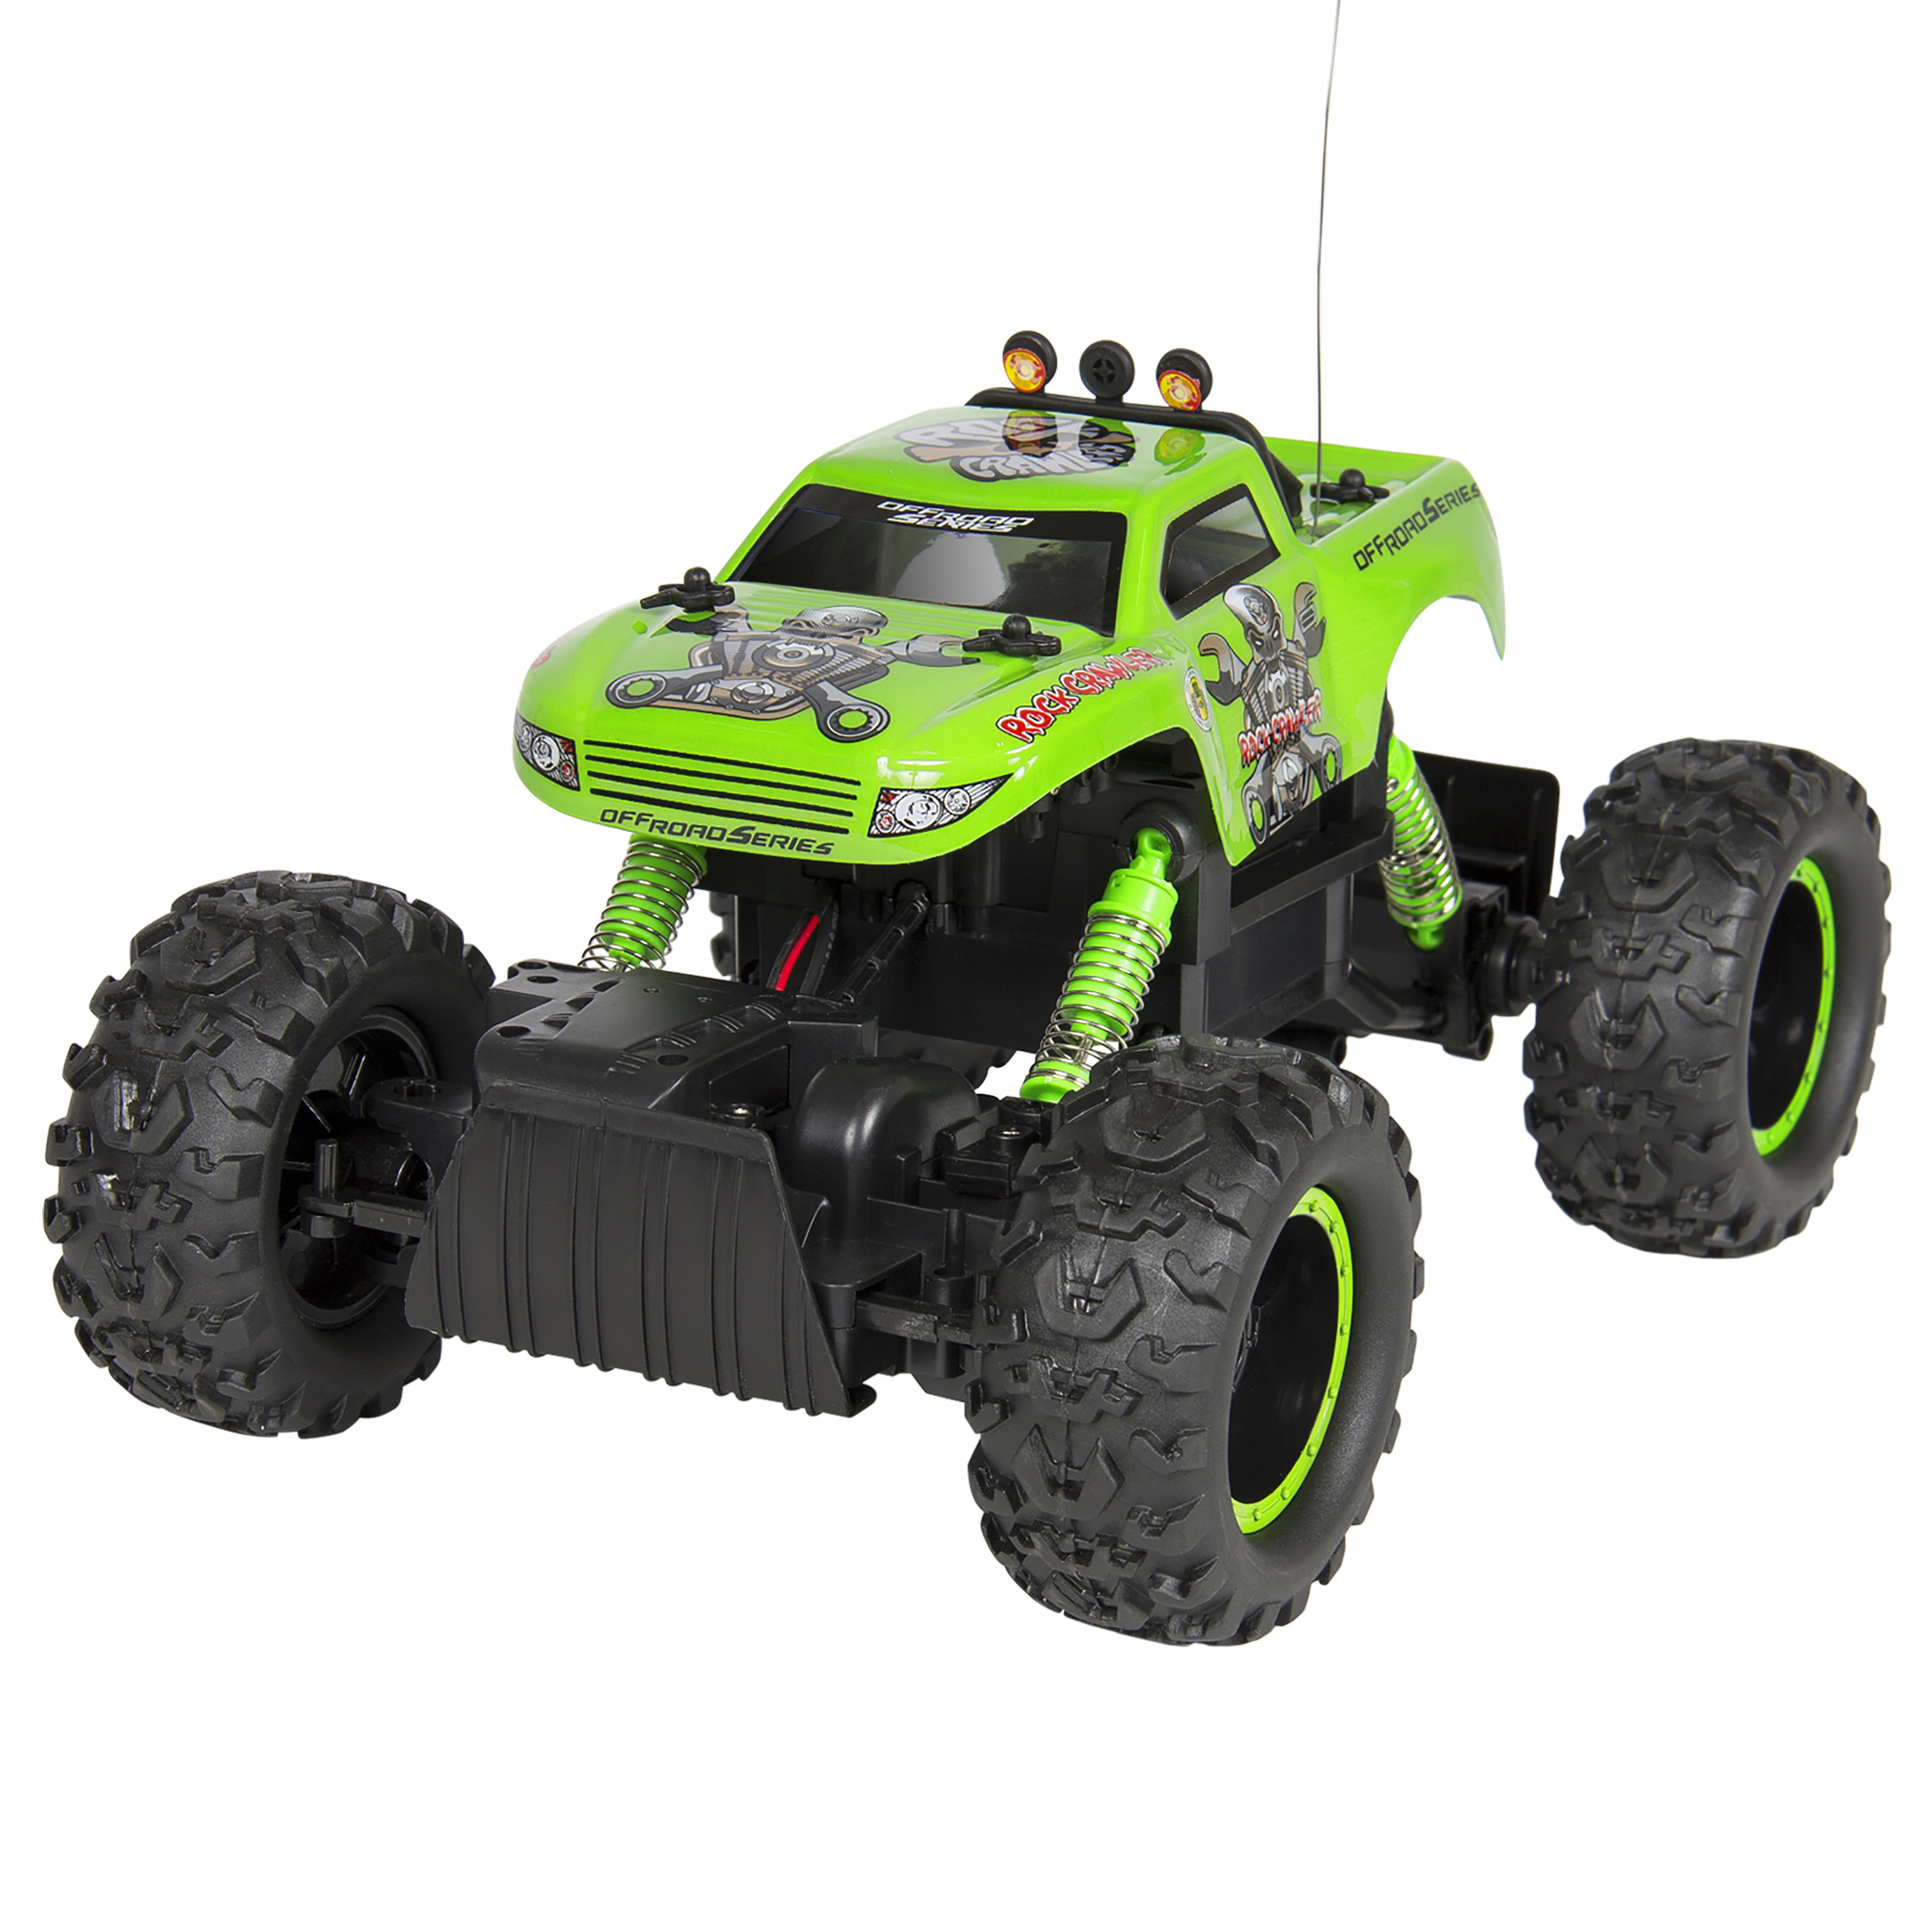 Best Choice Products Kids Rock Crawler Battery Powered Remote Control Monster Truck RC Toy w/ 4x4 Drive - Green